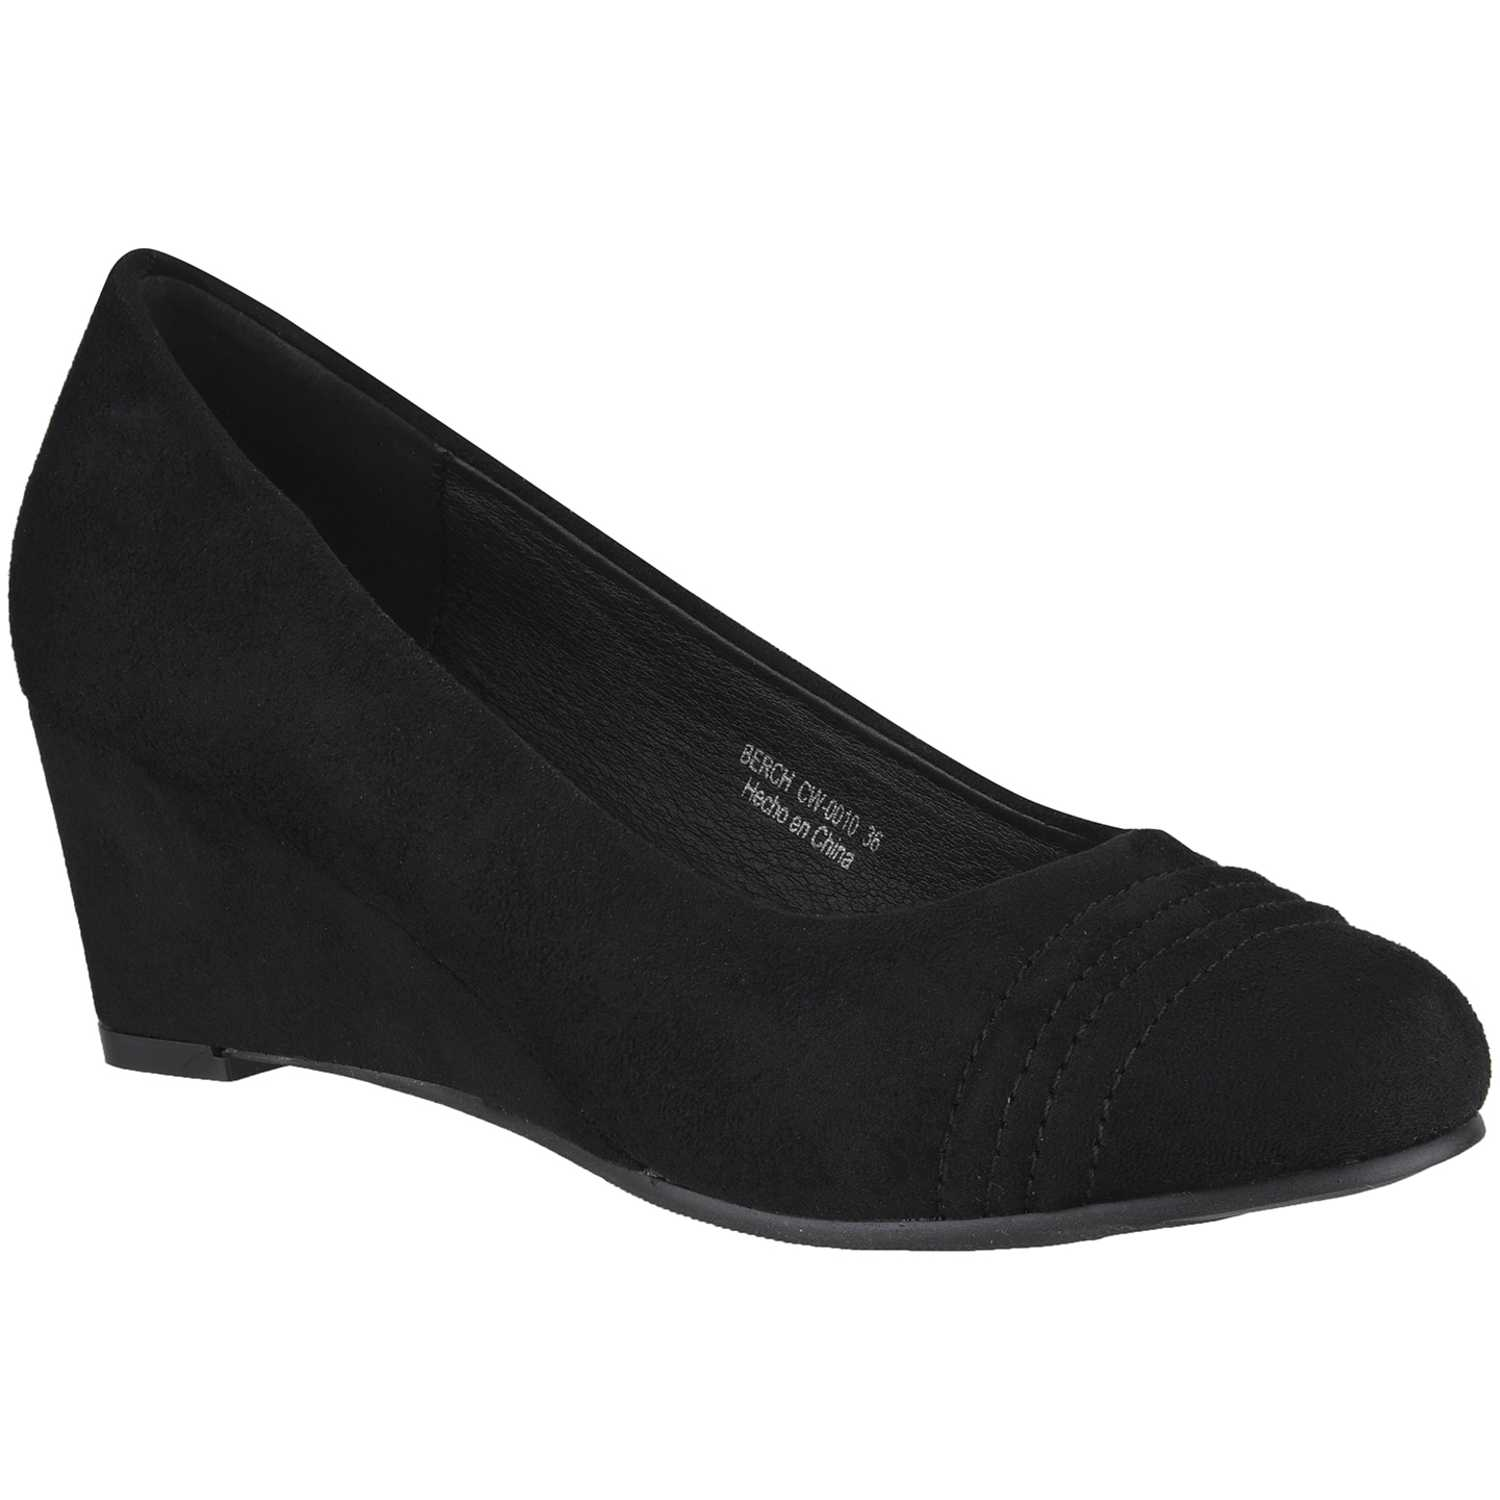 Platanitos cw-0010 Negro Estiletos y Pumps